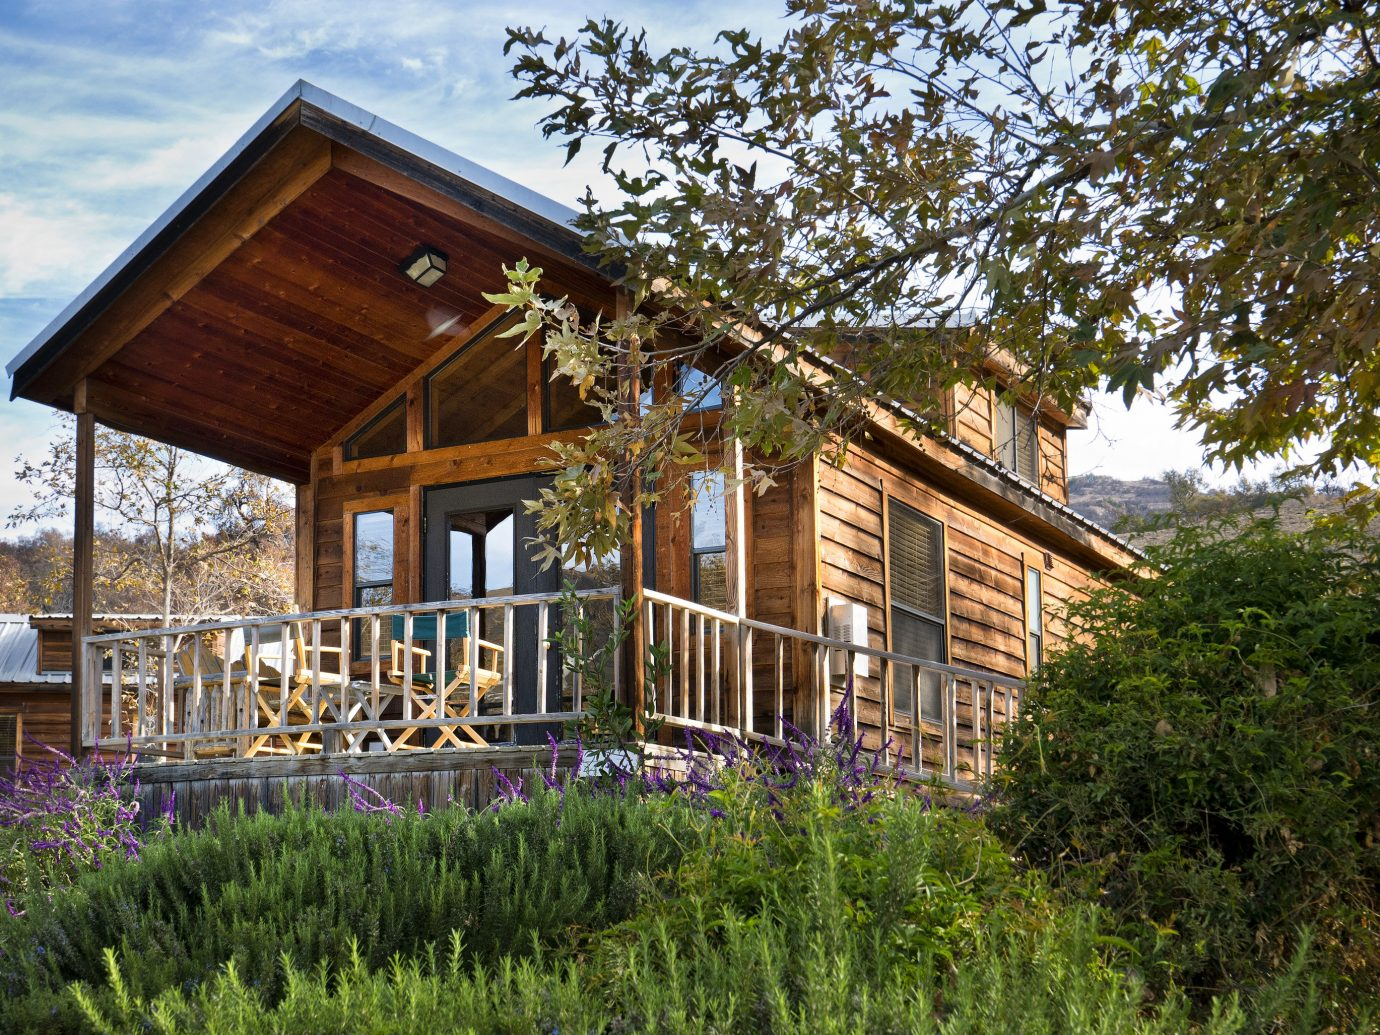 Boutique Hotels Fall Travel Hotels Outdoors + Adventure tree outdoor grass house building property home log cabin estate residential area siding cottage shed real estate backyard facade outdoor structure farmhouse yard Garden